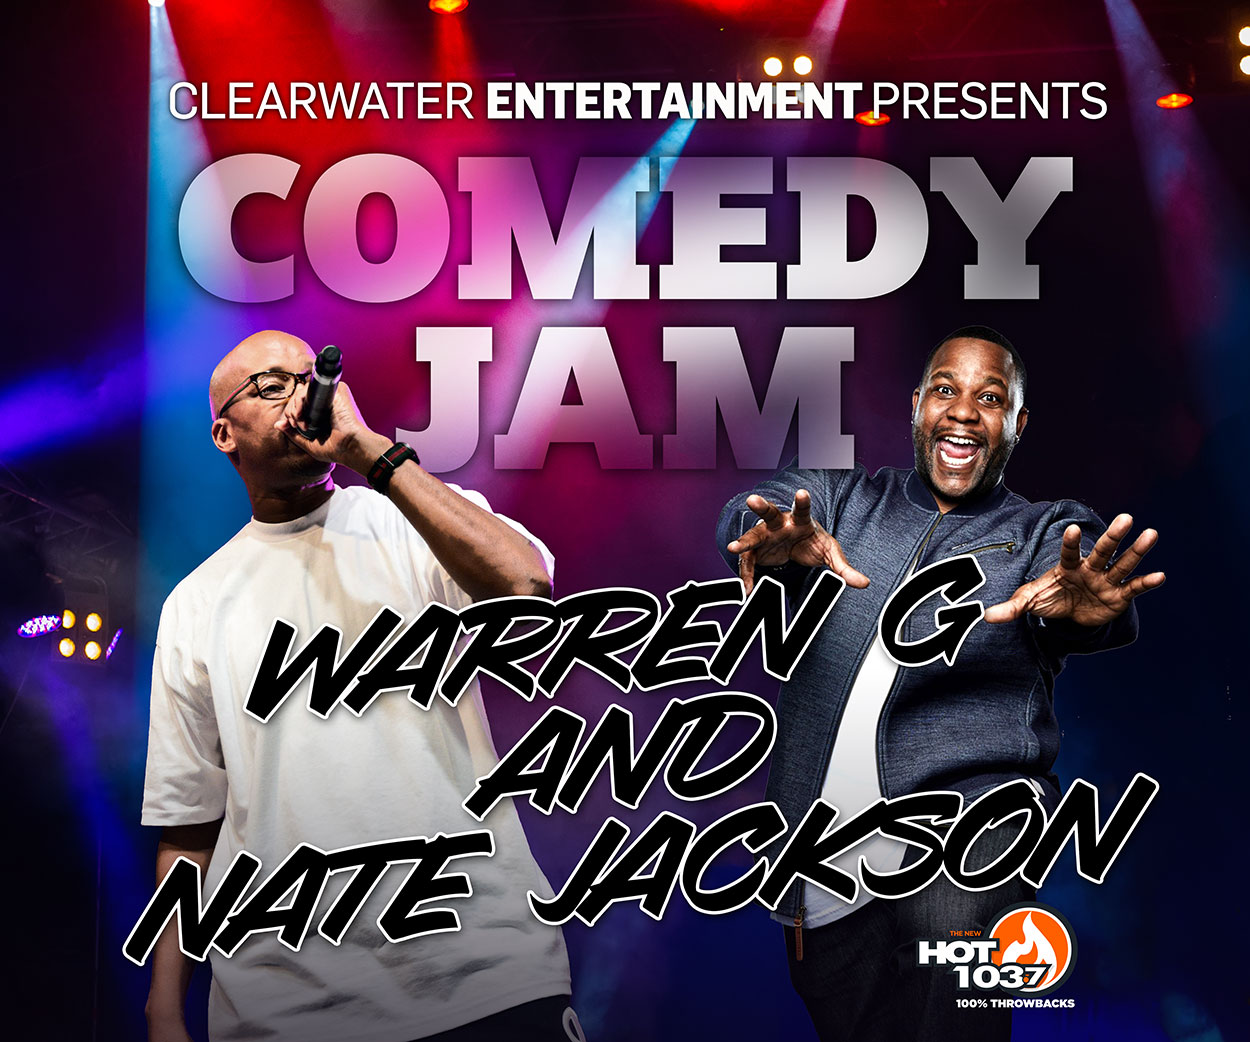 Comedy Jam ft. Warren G & Nate Jackson